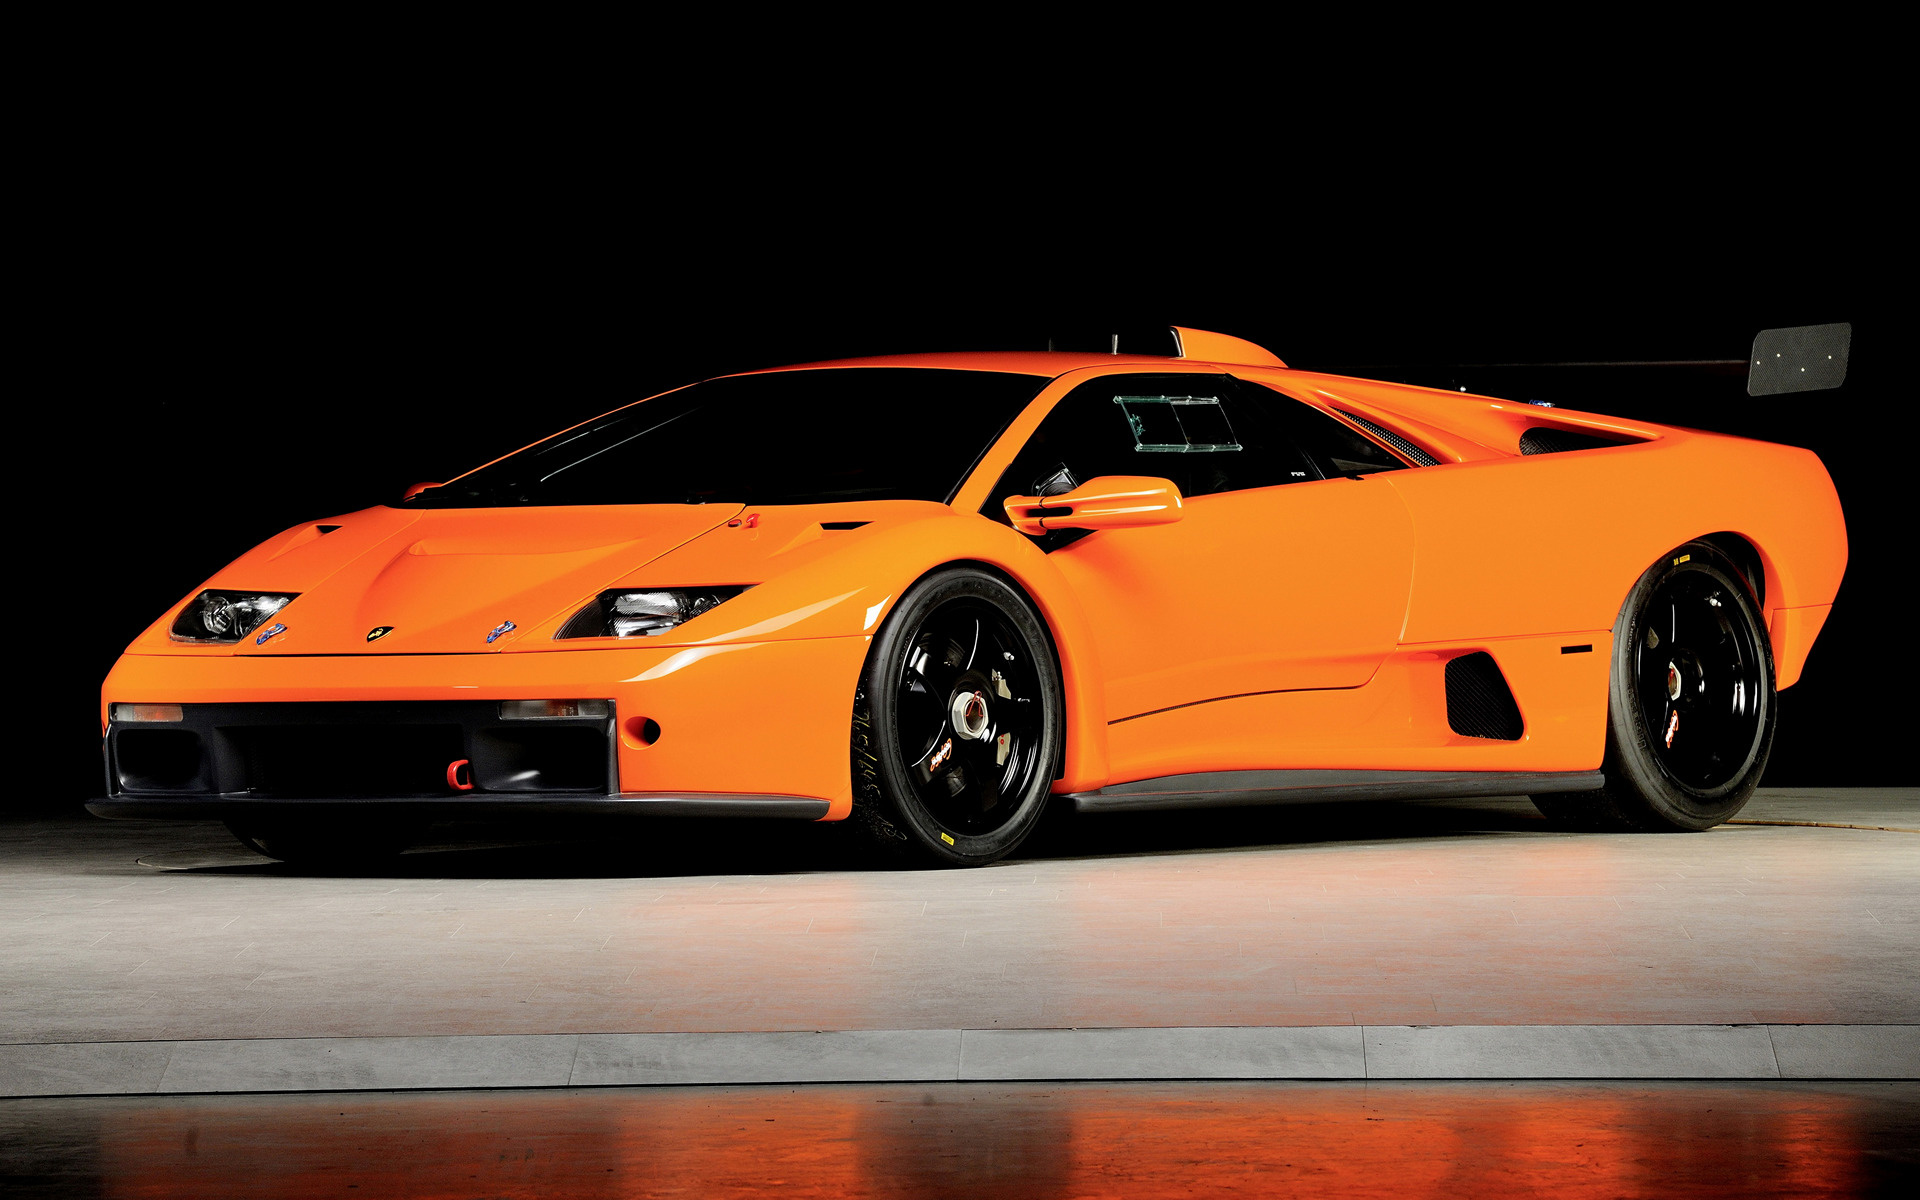 2000 Lamborghini Diablo GTR - Wallpapers and HD Images ...